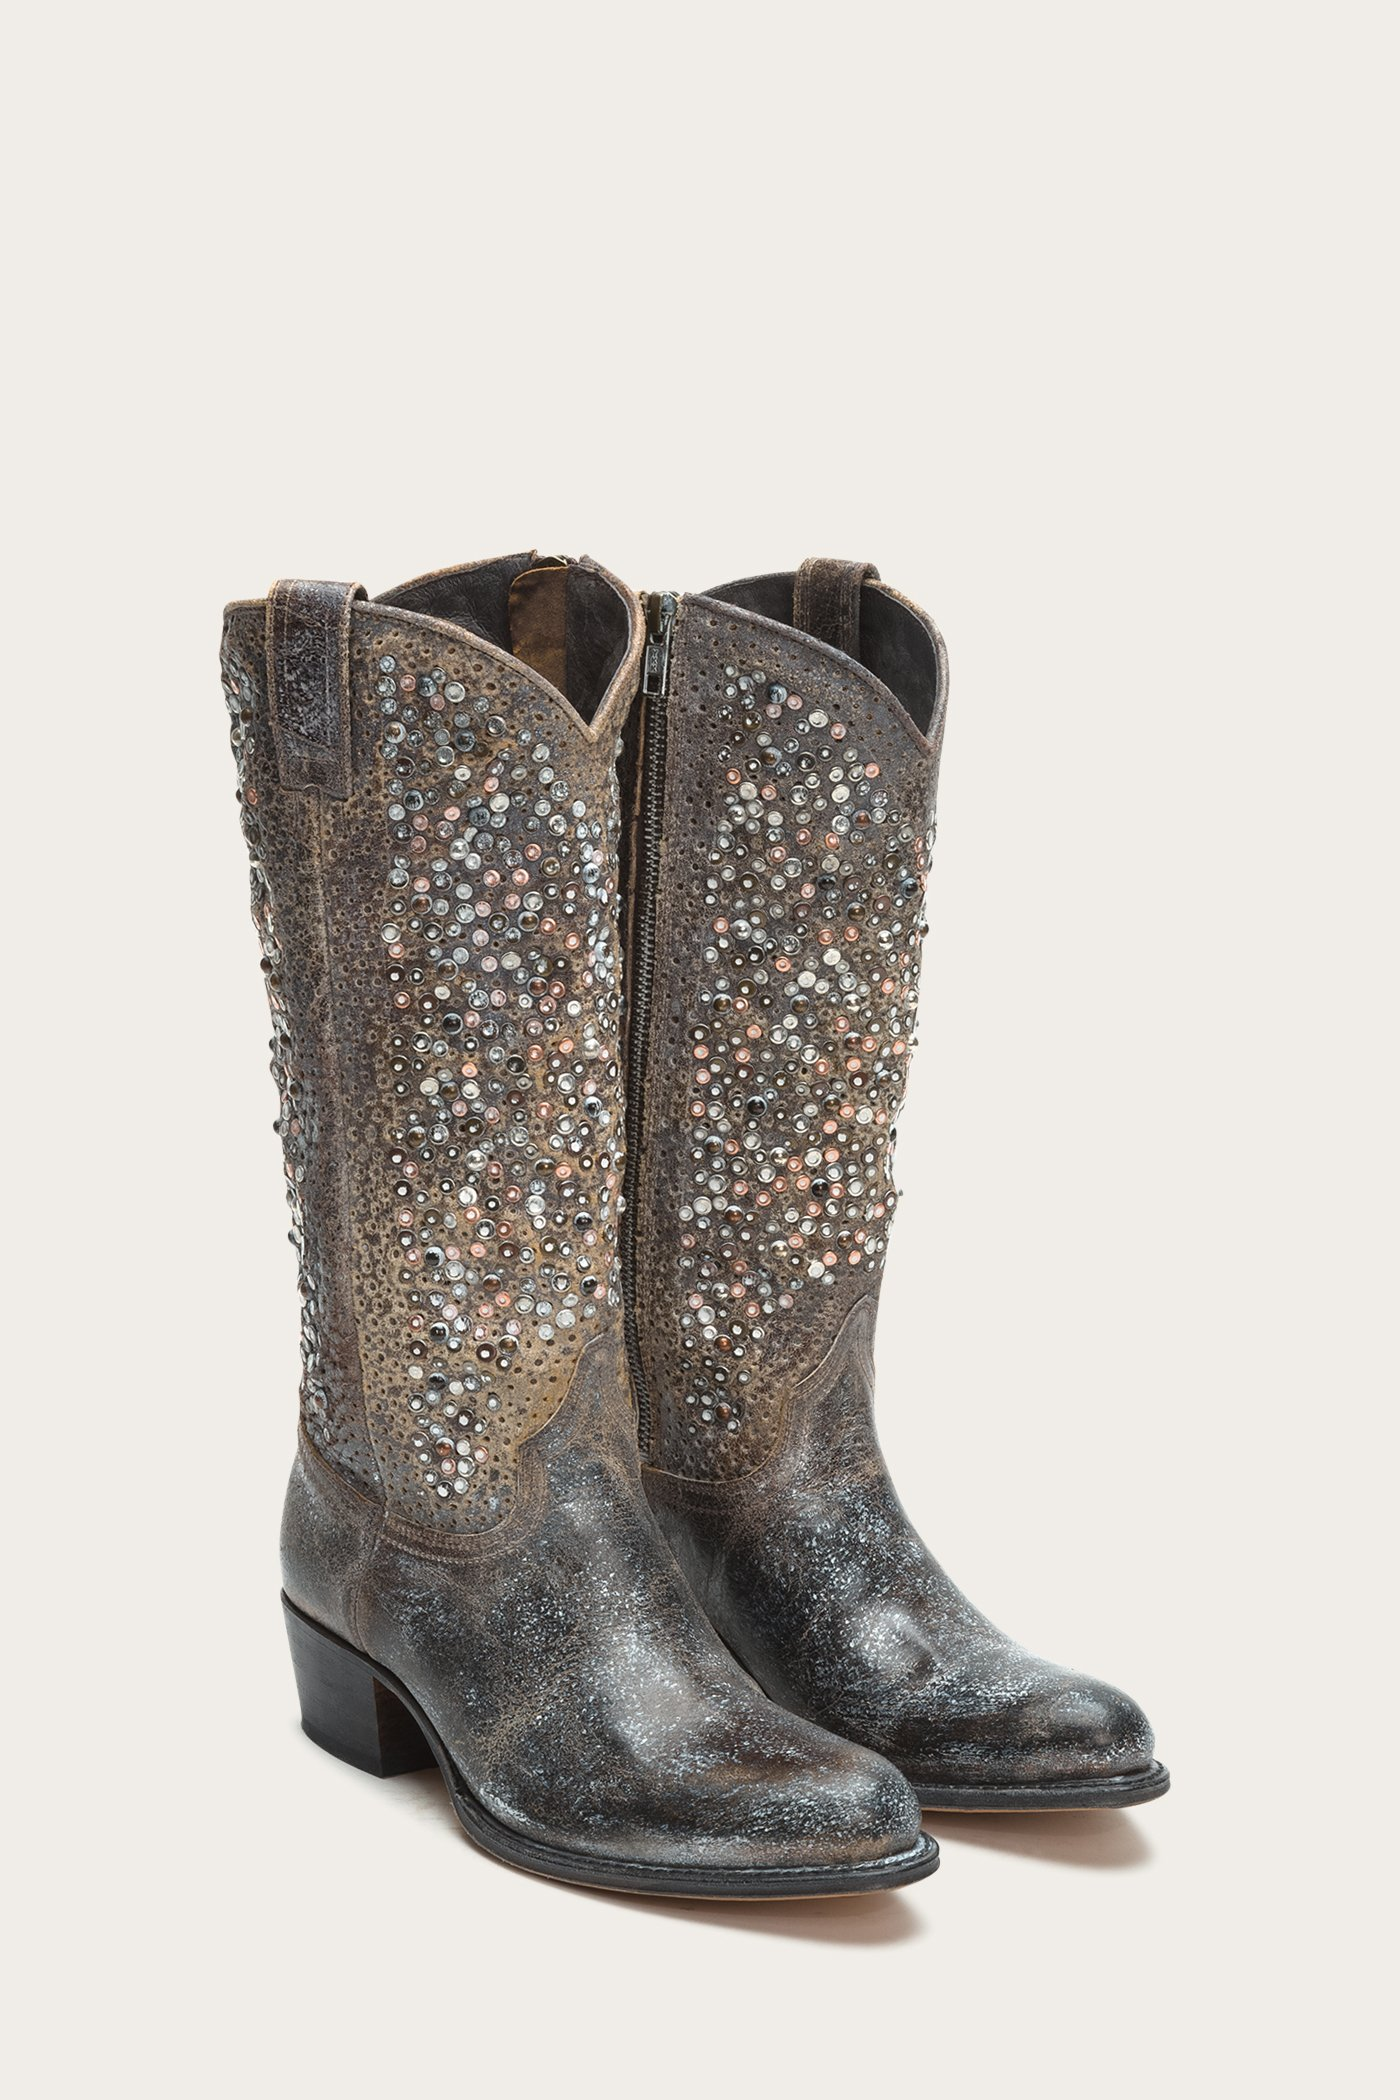 You are currently viewing FRYE Boots